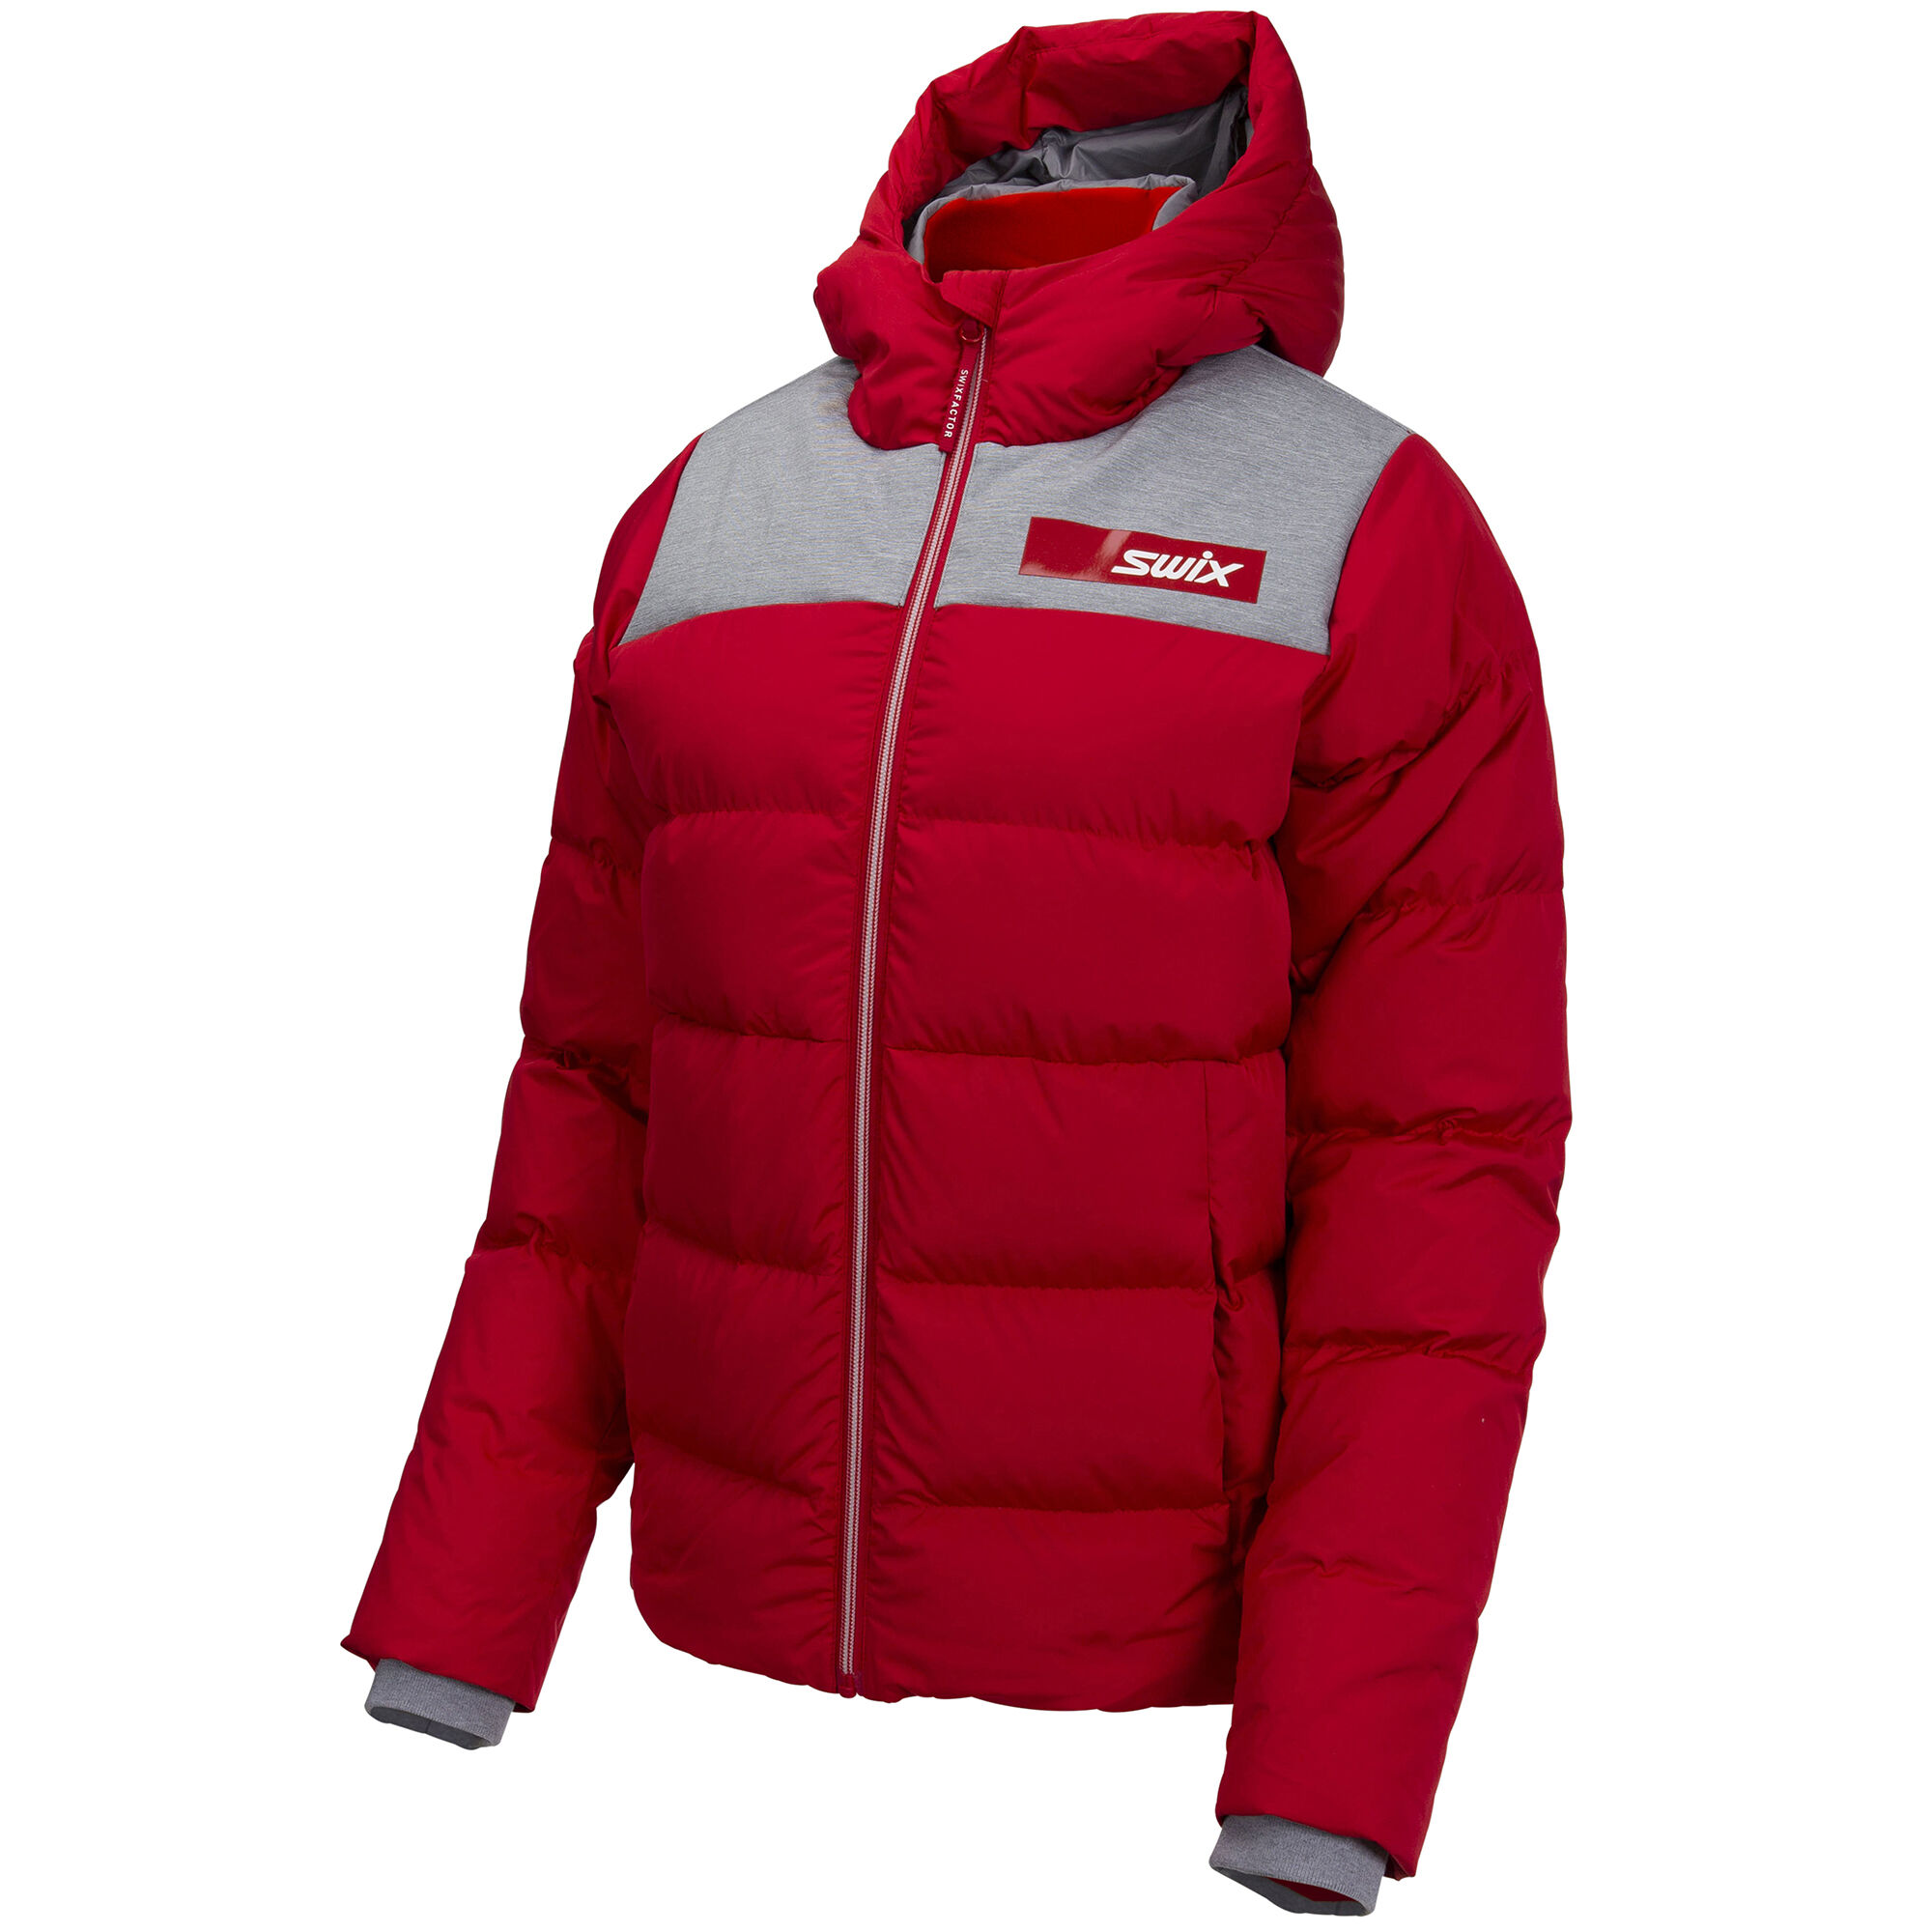 SWIX-20-21-13166-99990-Focus Down jacket W (1)